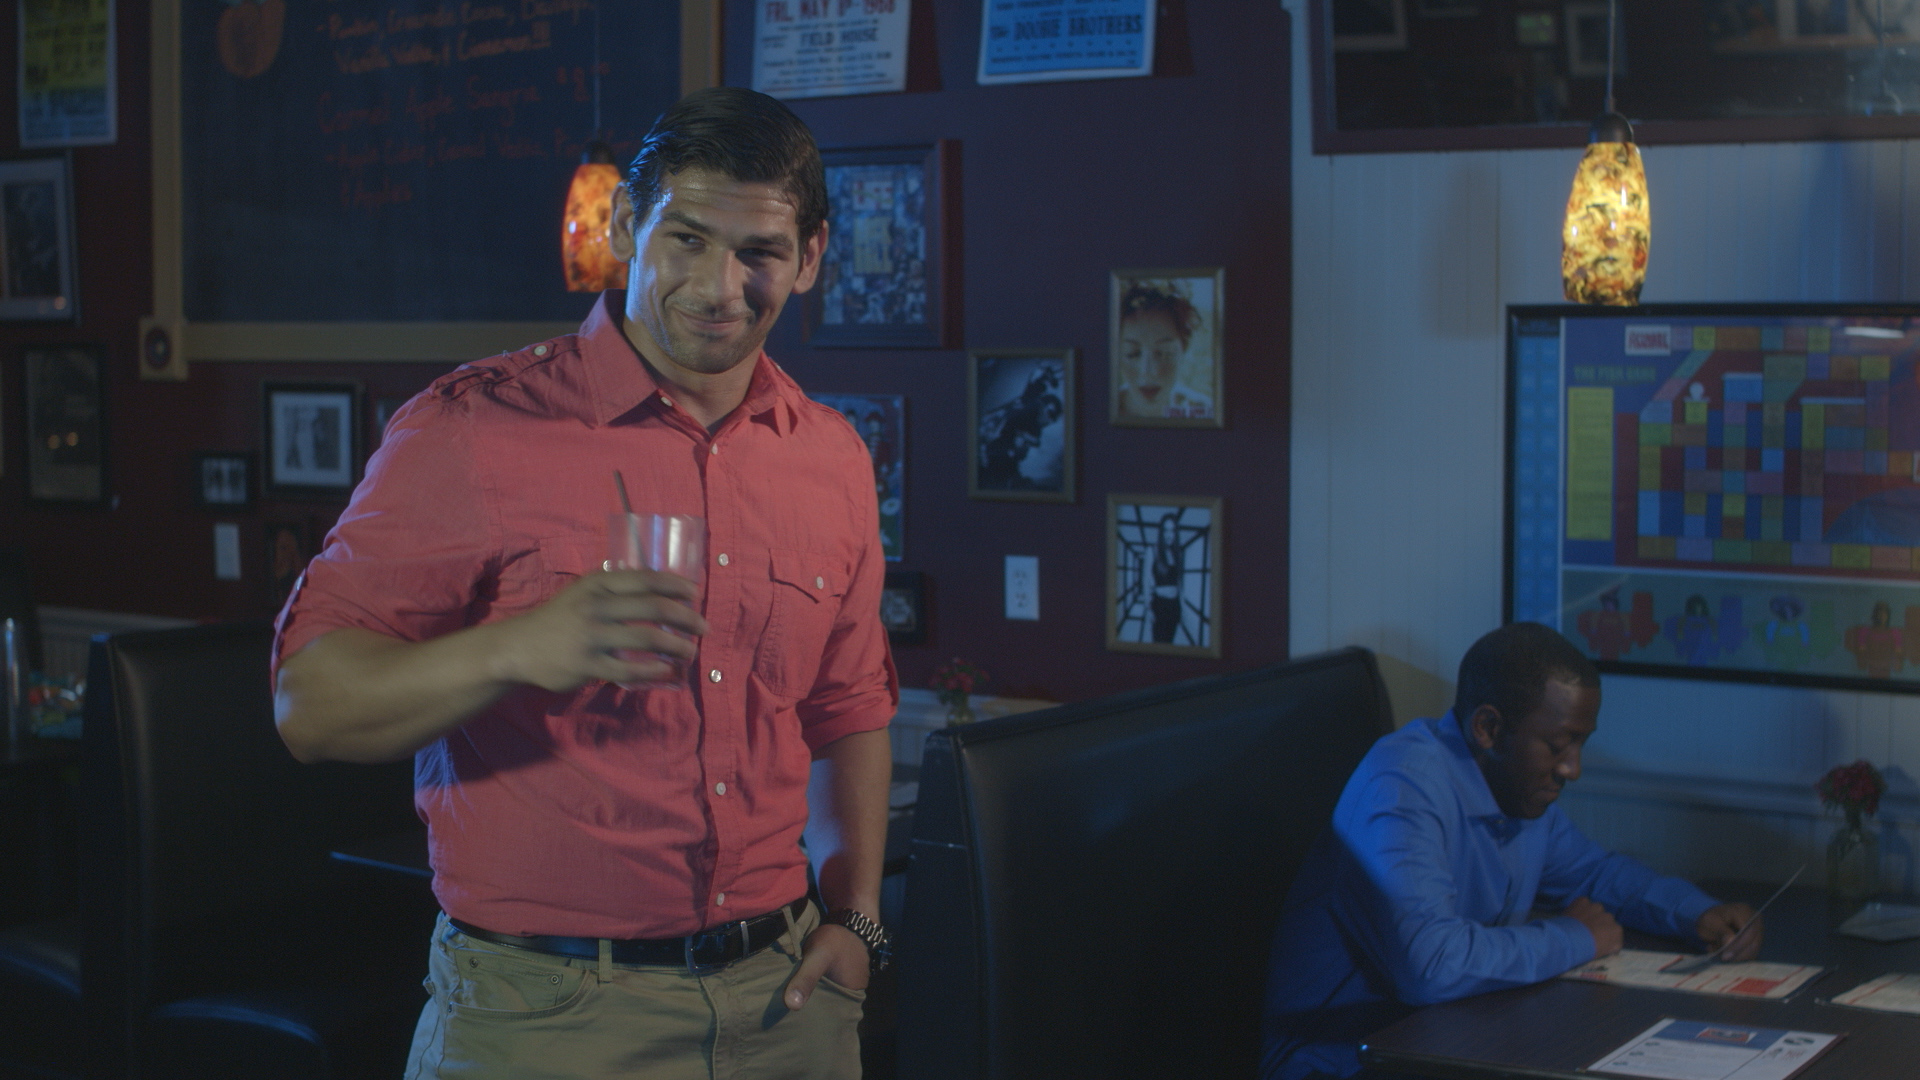 Casey William Hines with Jamaal Eversley at back in Geena Matuson's (@geenamatuson) upcoming short 'The Best A Man Can Get' filmed at Rock 'n' Roll Rib Joint in Medfield, MA. Cinematography by Denez McAdoo.